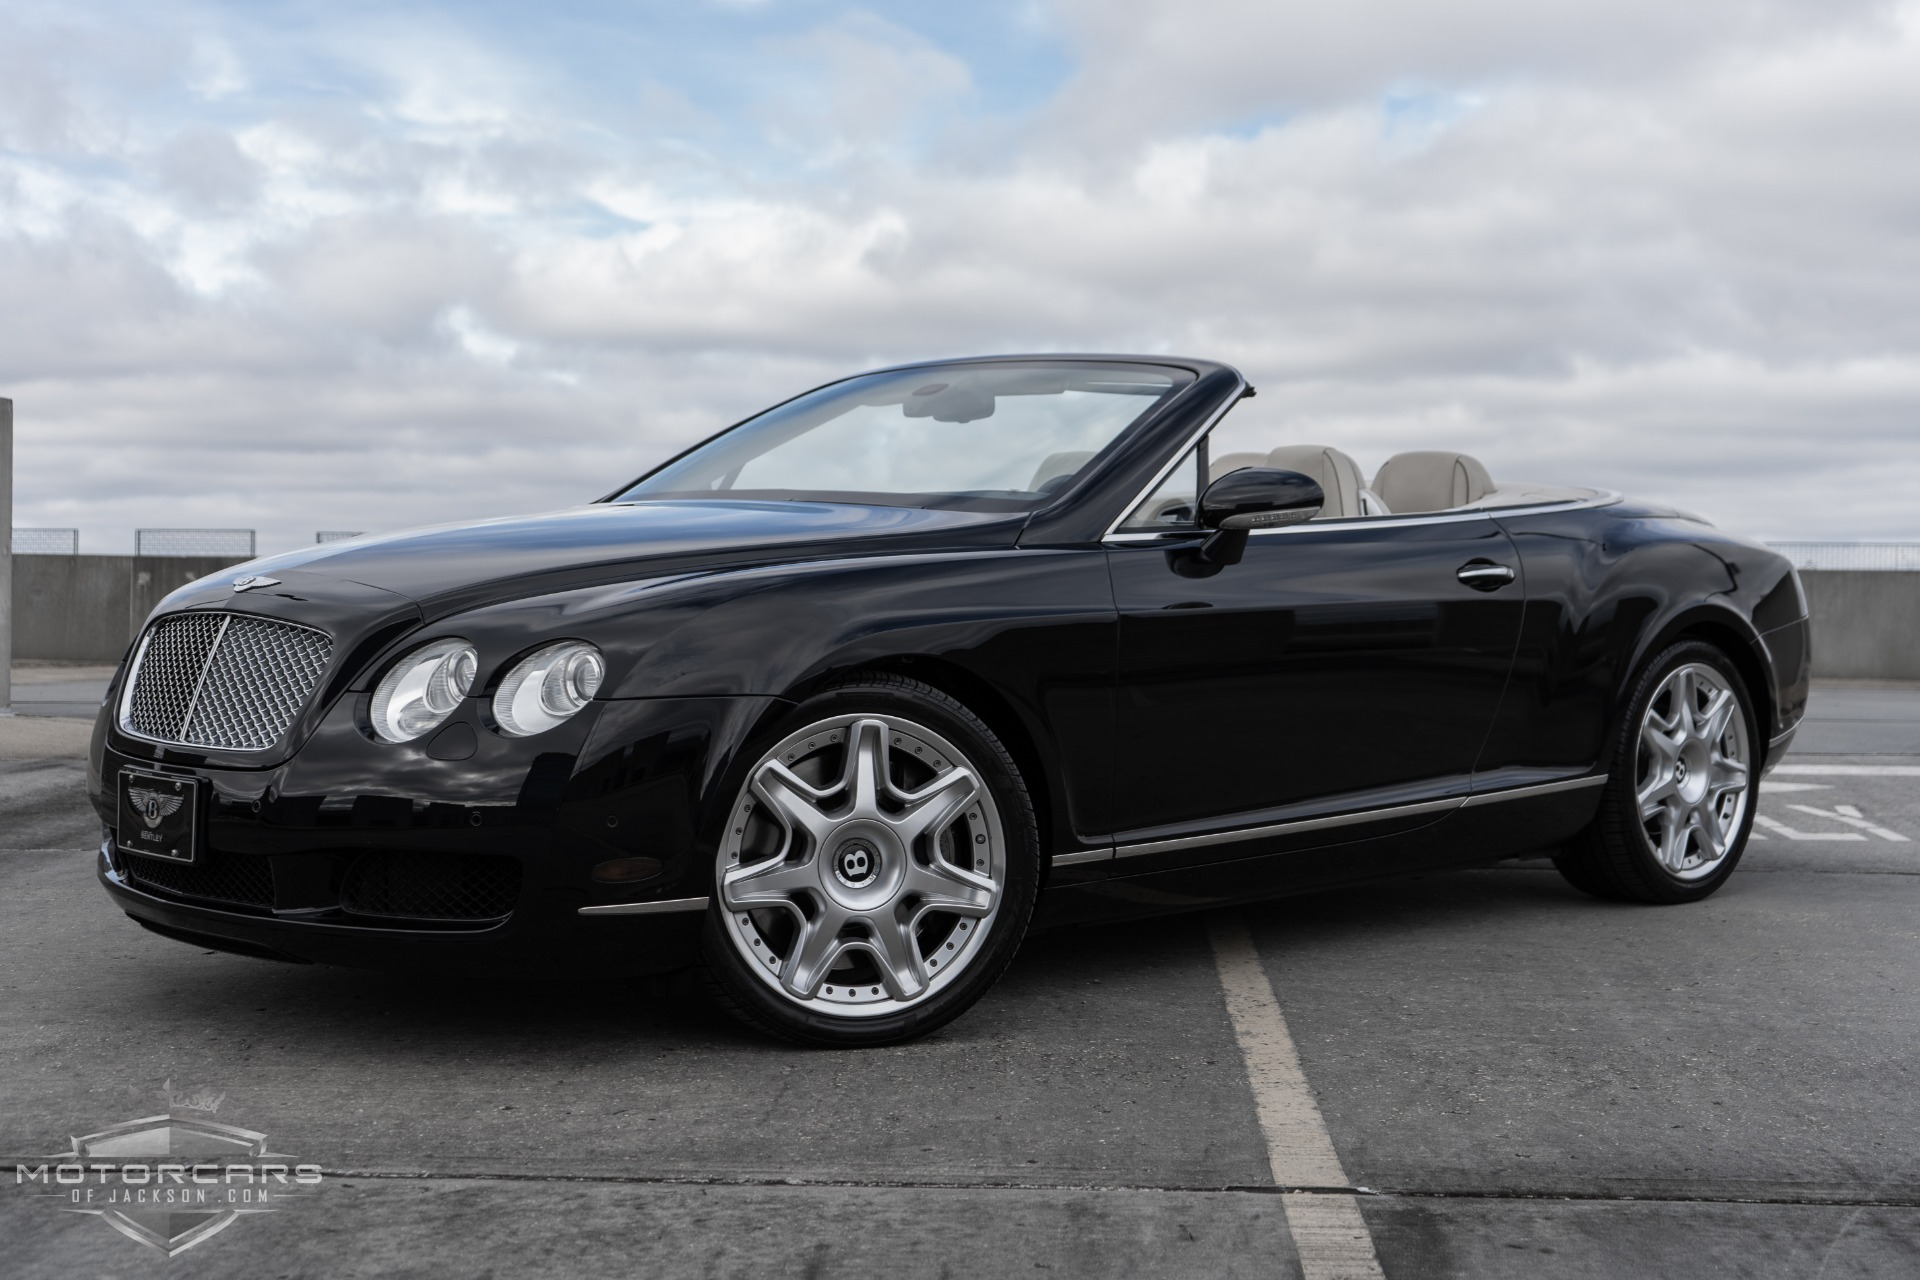 Used-2009-Bentley-Continental-GT-Convertible-for-sale-Jackson-MS